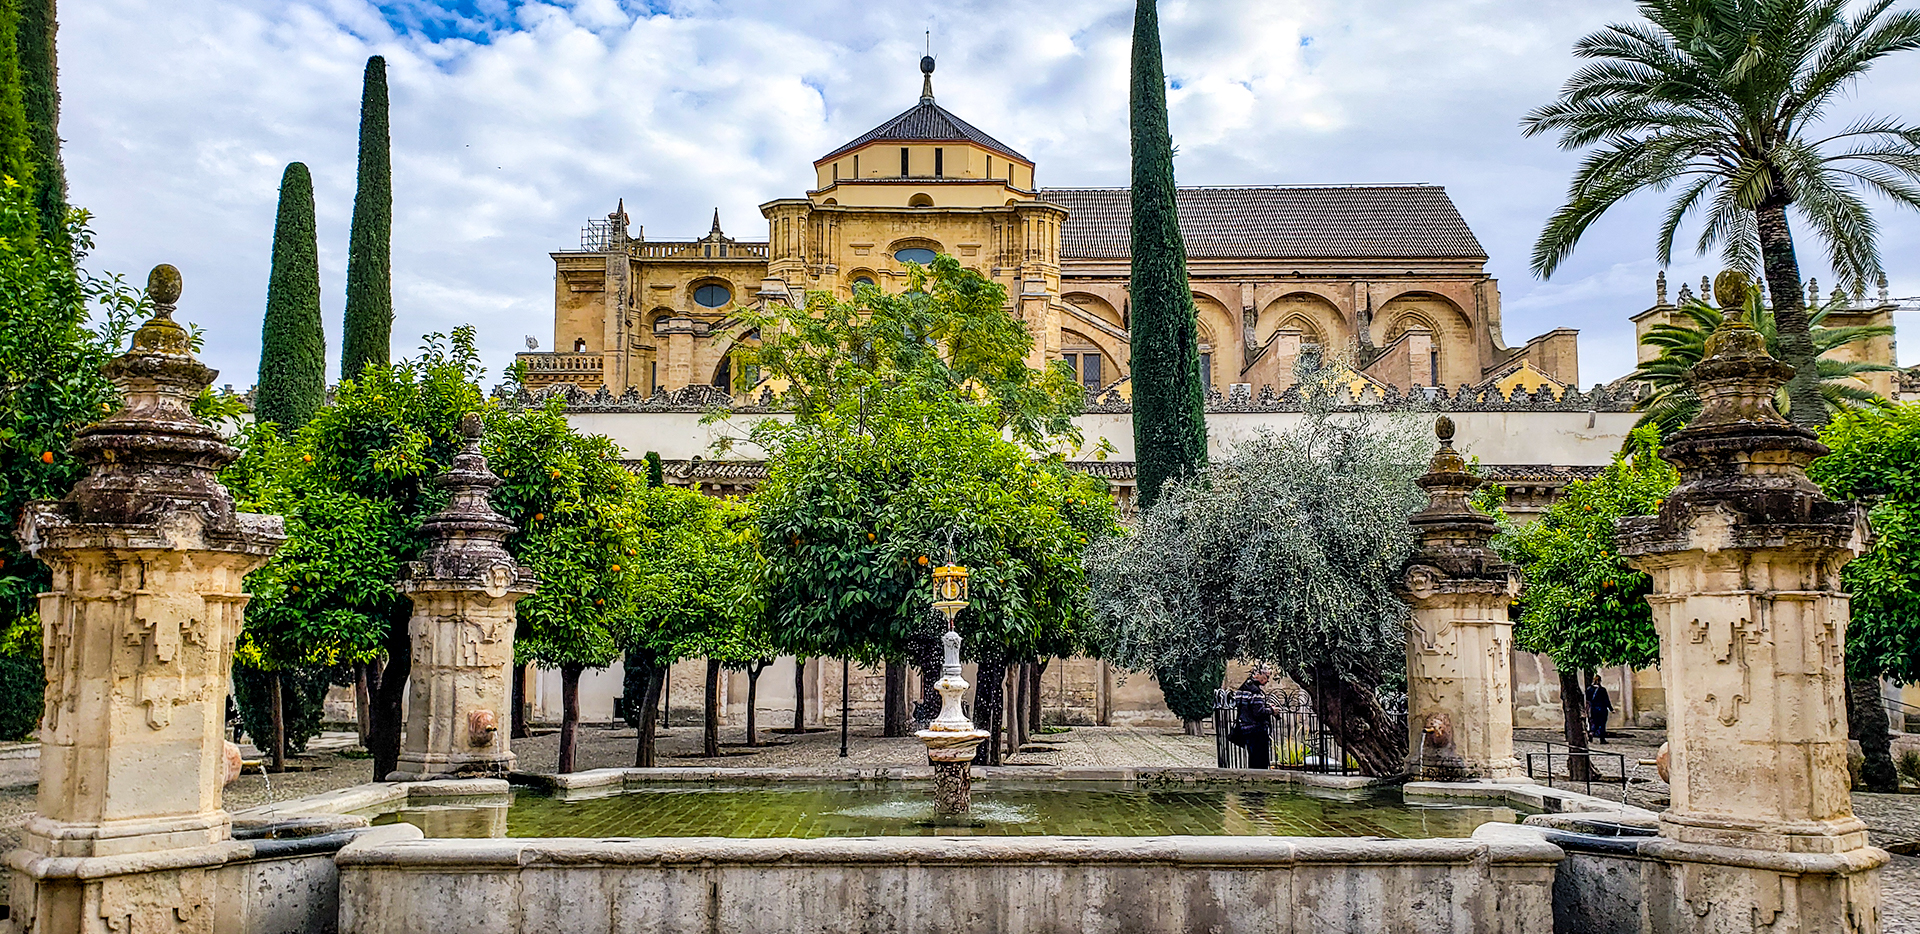 Spain Cordoba Mosque Cathedral Courtyard Fountain